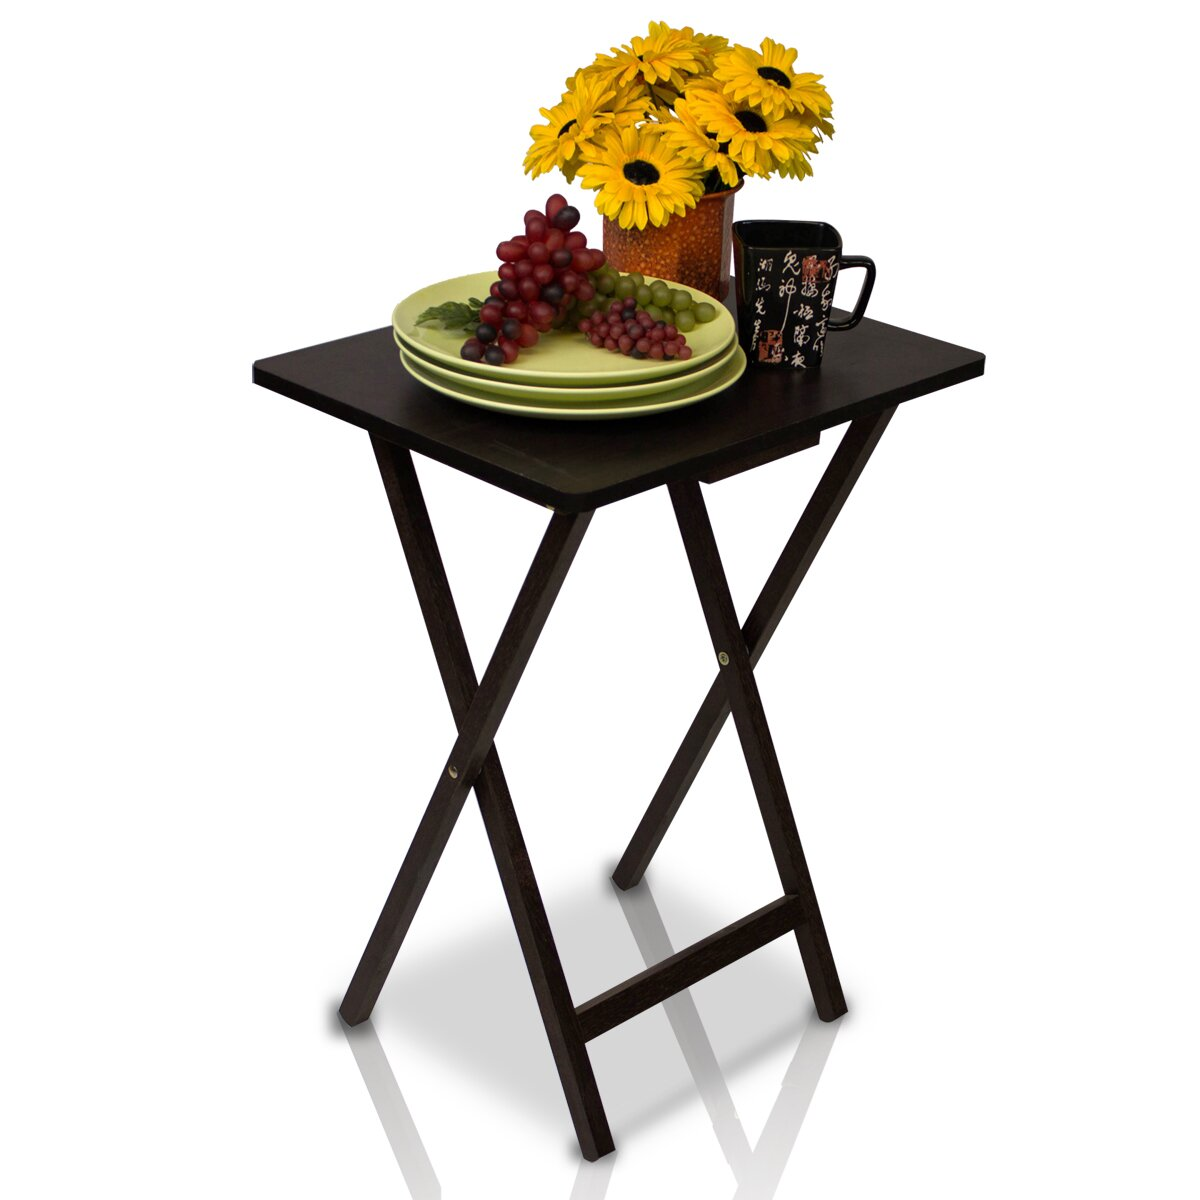 Folding food tray table images for Cuisine table retractable